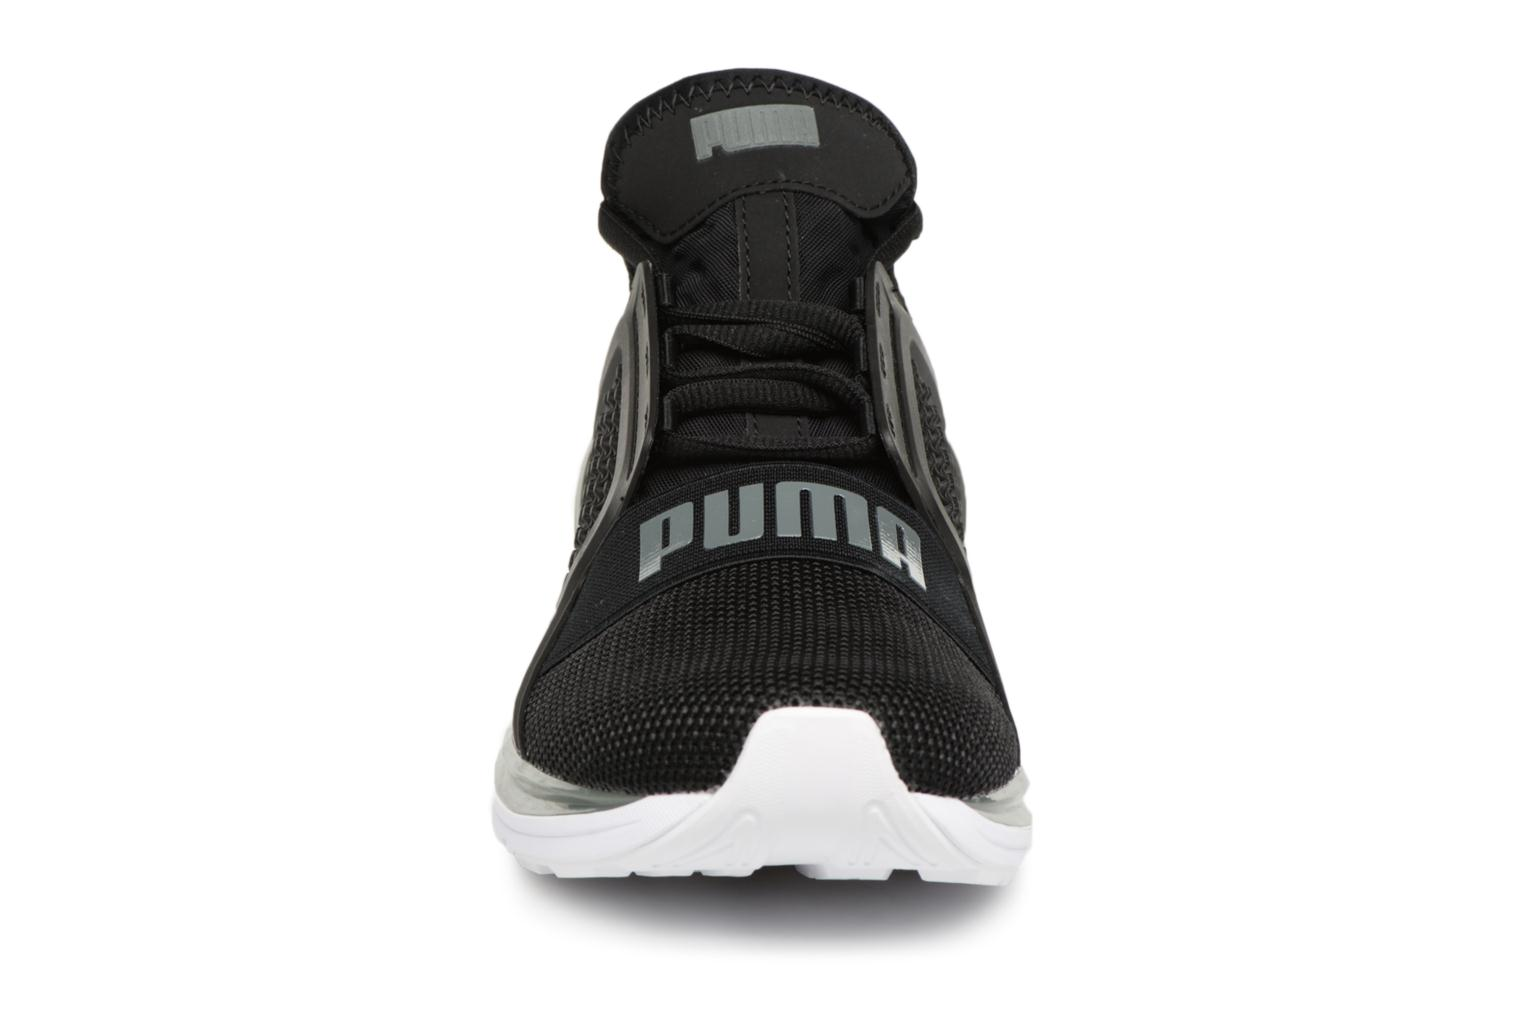 Puma Knit pebble Limitless Knit Limitless Puma pebble Black Black LpSUVGjzMq